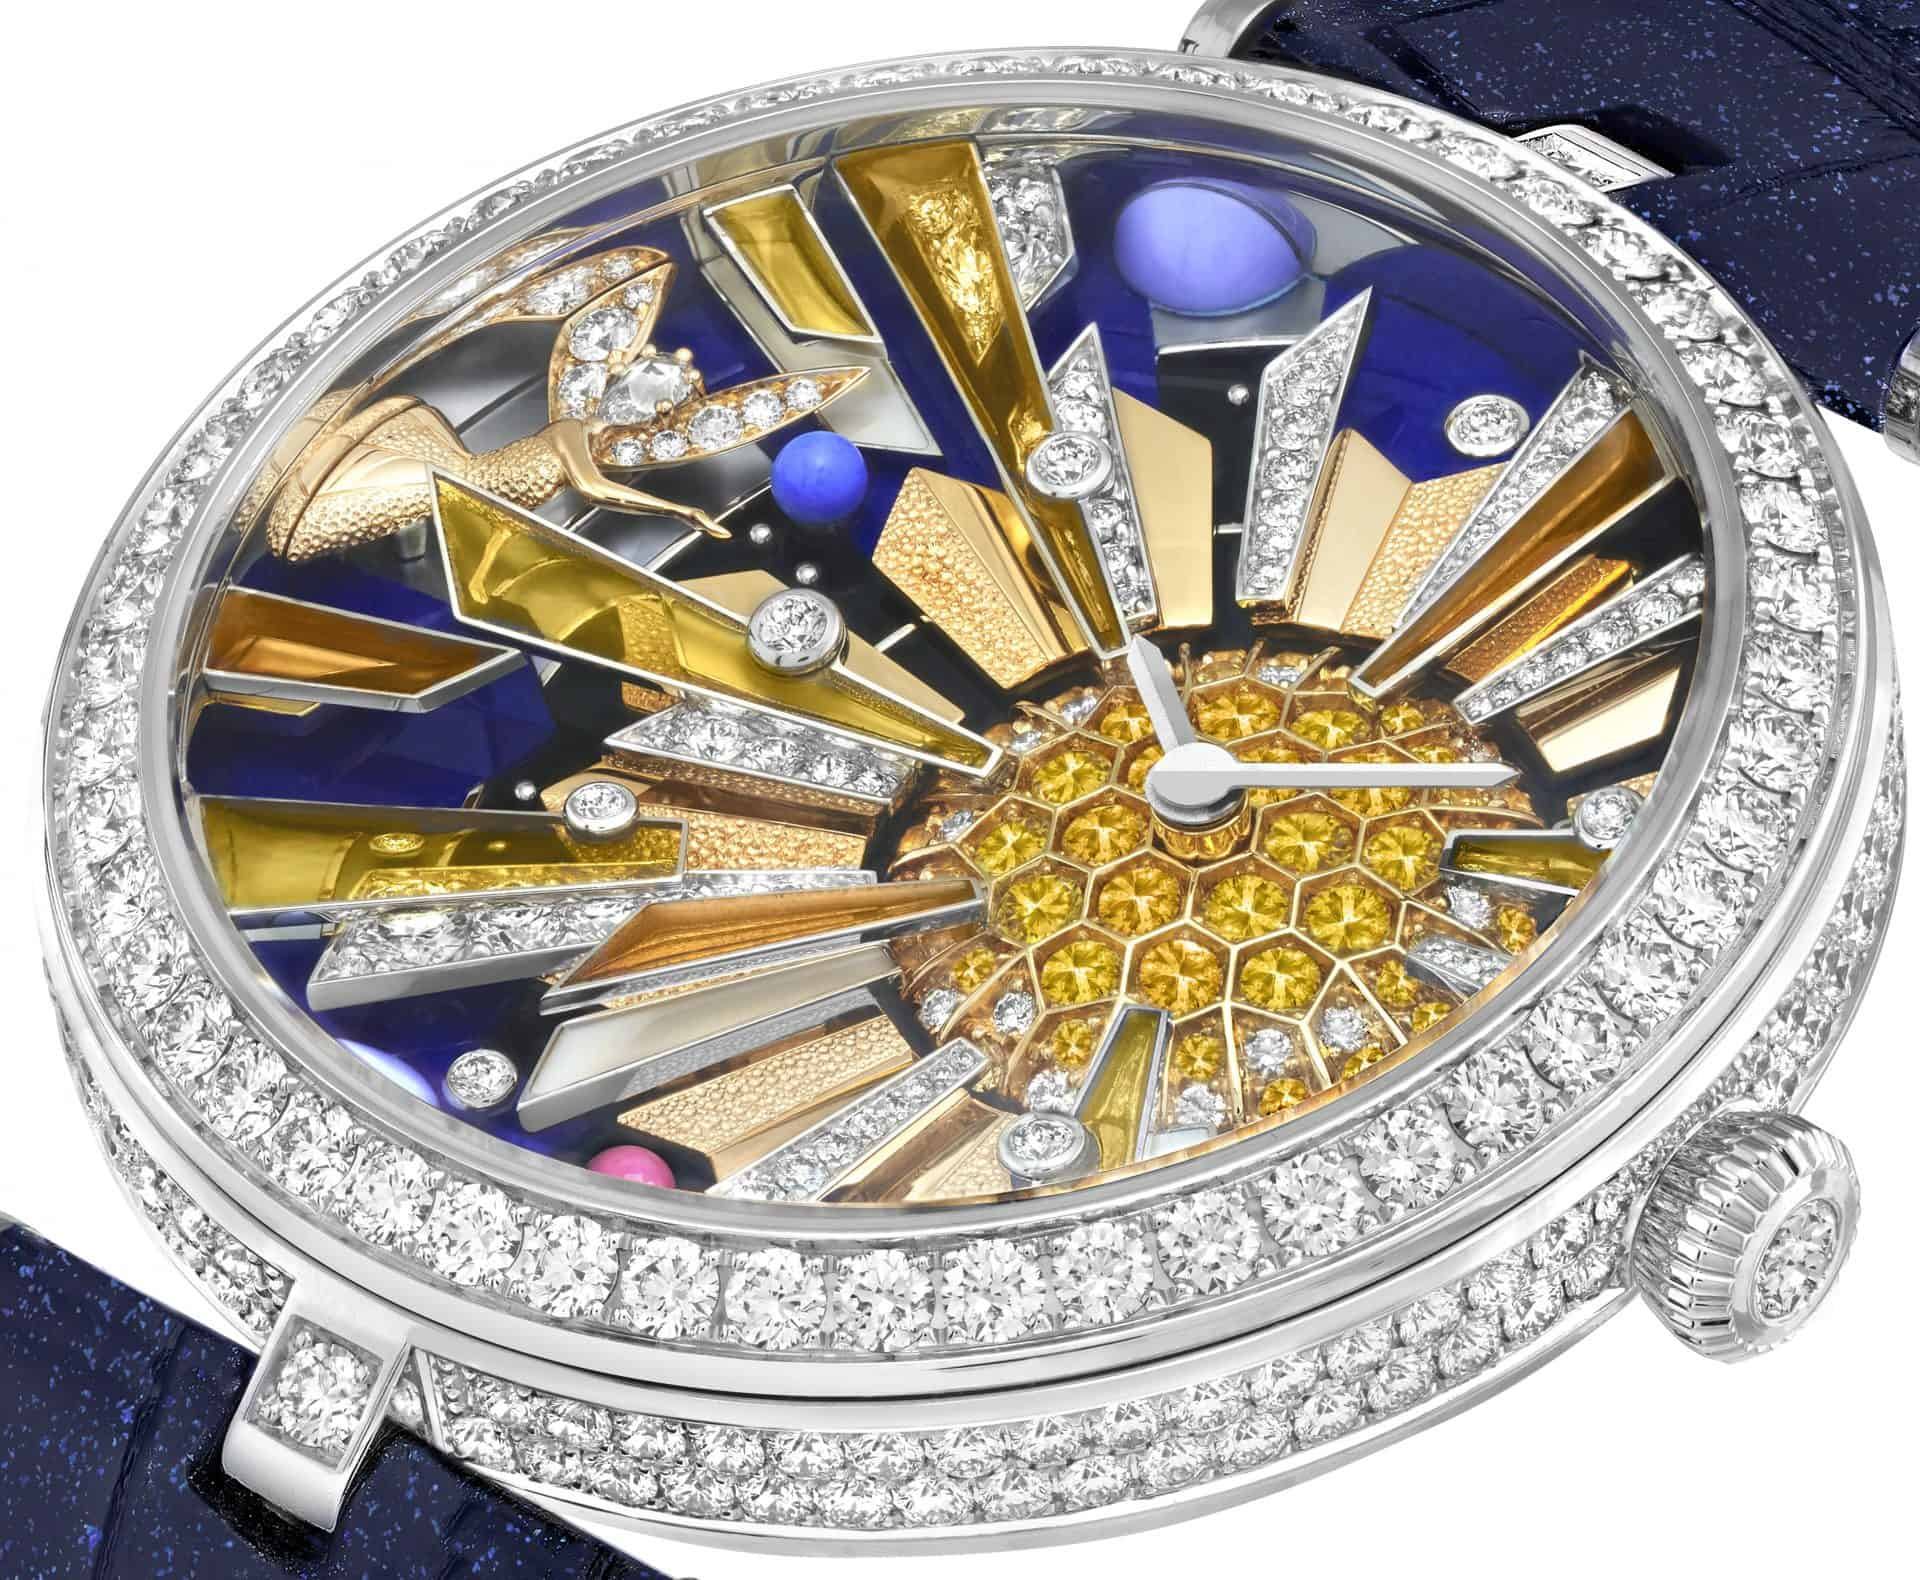 Van Cleef & Arpels Lady Arpels Frivole Secréte watch GPHG 2020